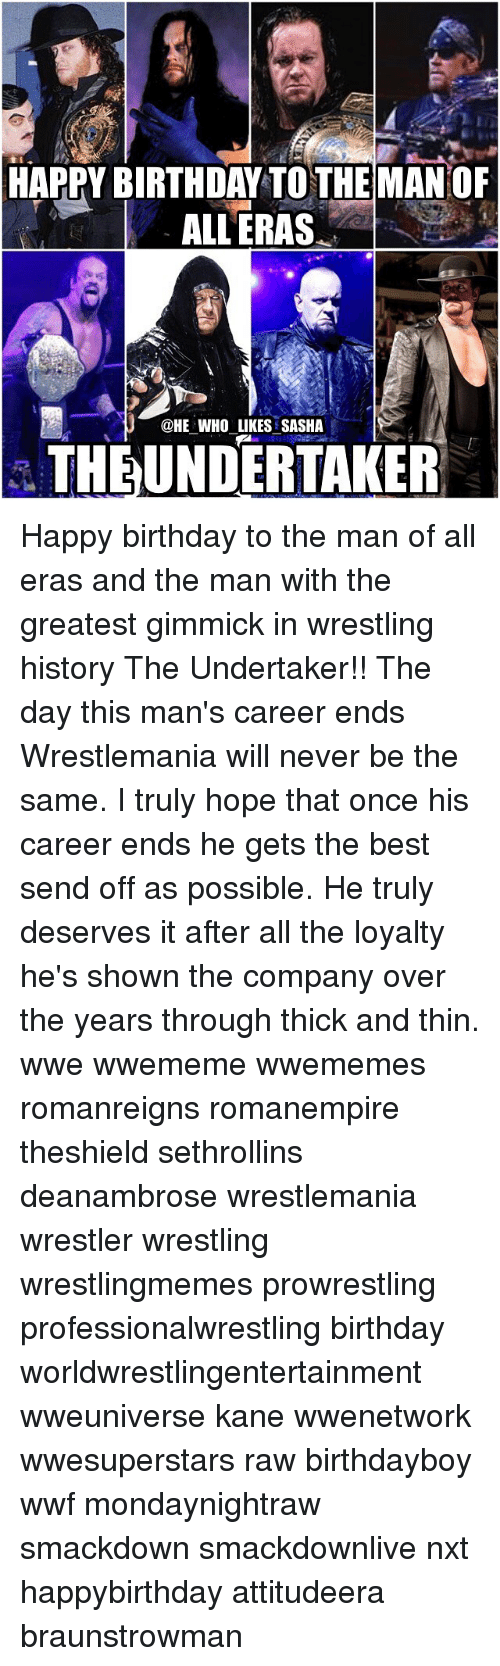 Memes, 🤖, and Kane: HAPPY BIRTHDAY TO THE MANOF  ALL ERAS  U @HE WHO LIKES SASHA  THE UNDERTAKER Happy birthday to the man of all eras and the man with the greatest gimmick in wrestling history The Undertaker!! The day this man's career ends Wrestlemania will never be the same. I truly hope that once his career ends he gets the best send off as possible. He truly deserves it after all the loyalty he's shown the company over the years through thick and thin. wwe wwememe wwememes romanreigns romanempire theshield sethrollins deanambrose wrestlemania wrestler wrestling wrestlingmemes prowrestling professionalwrestling birthday worldwrestlingentertainment wweuniverse kane wwenetwork wwesuperstars raw birthdayboy wwf mondaynightraw smackdown smackdownlive nxt happybirthday attitudeera braunstrowman